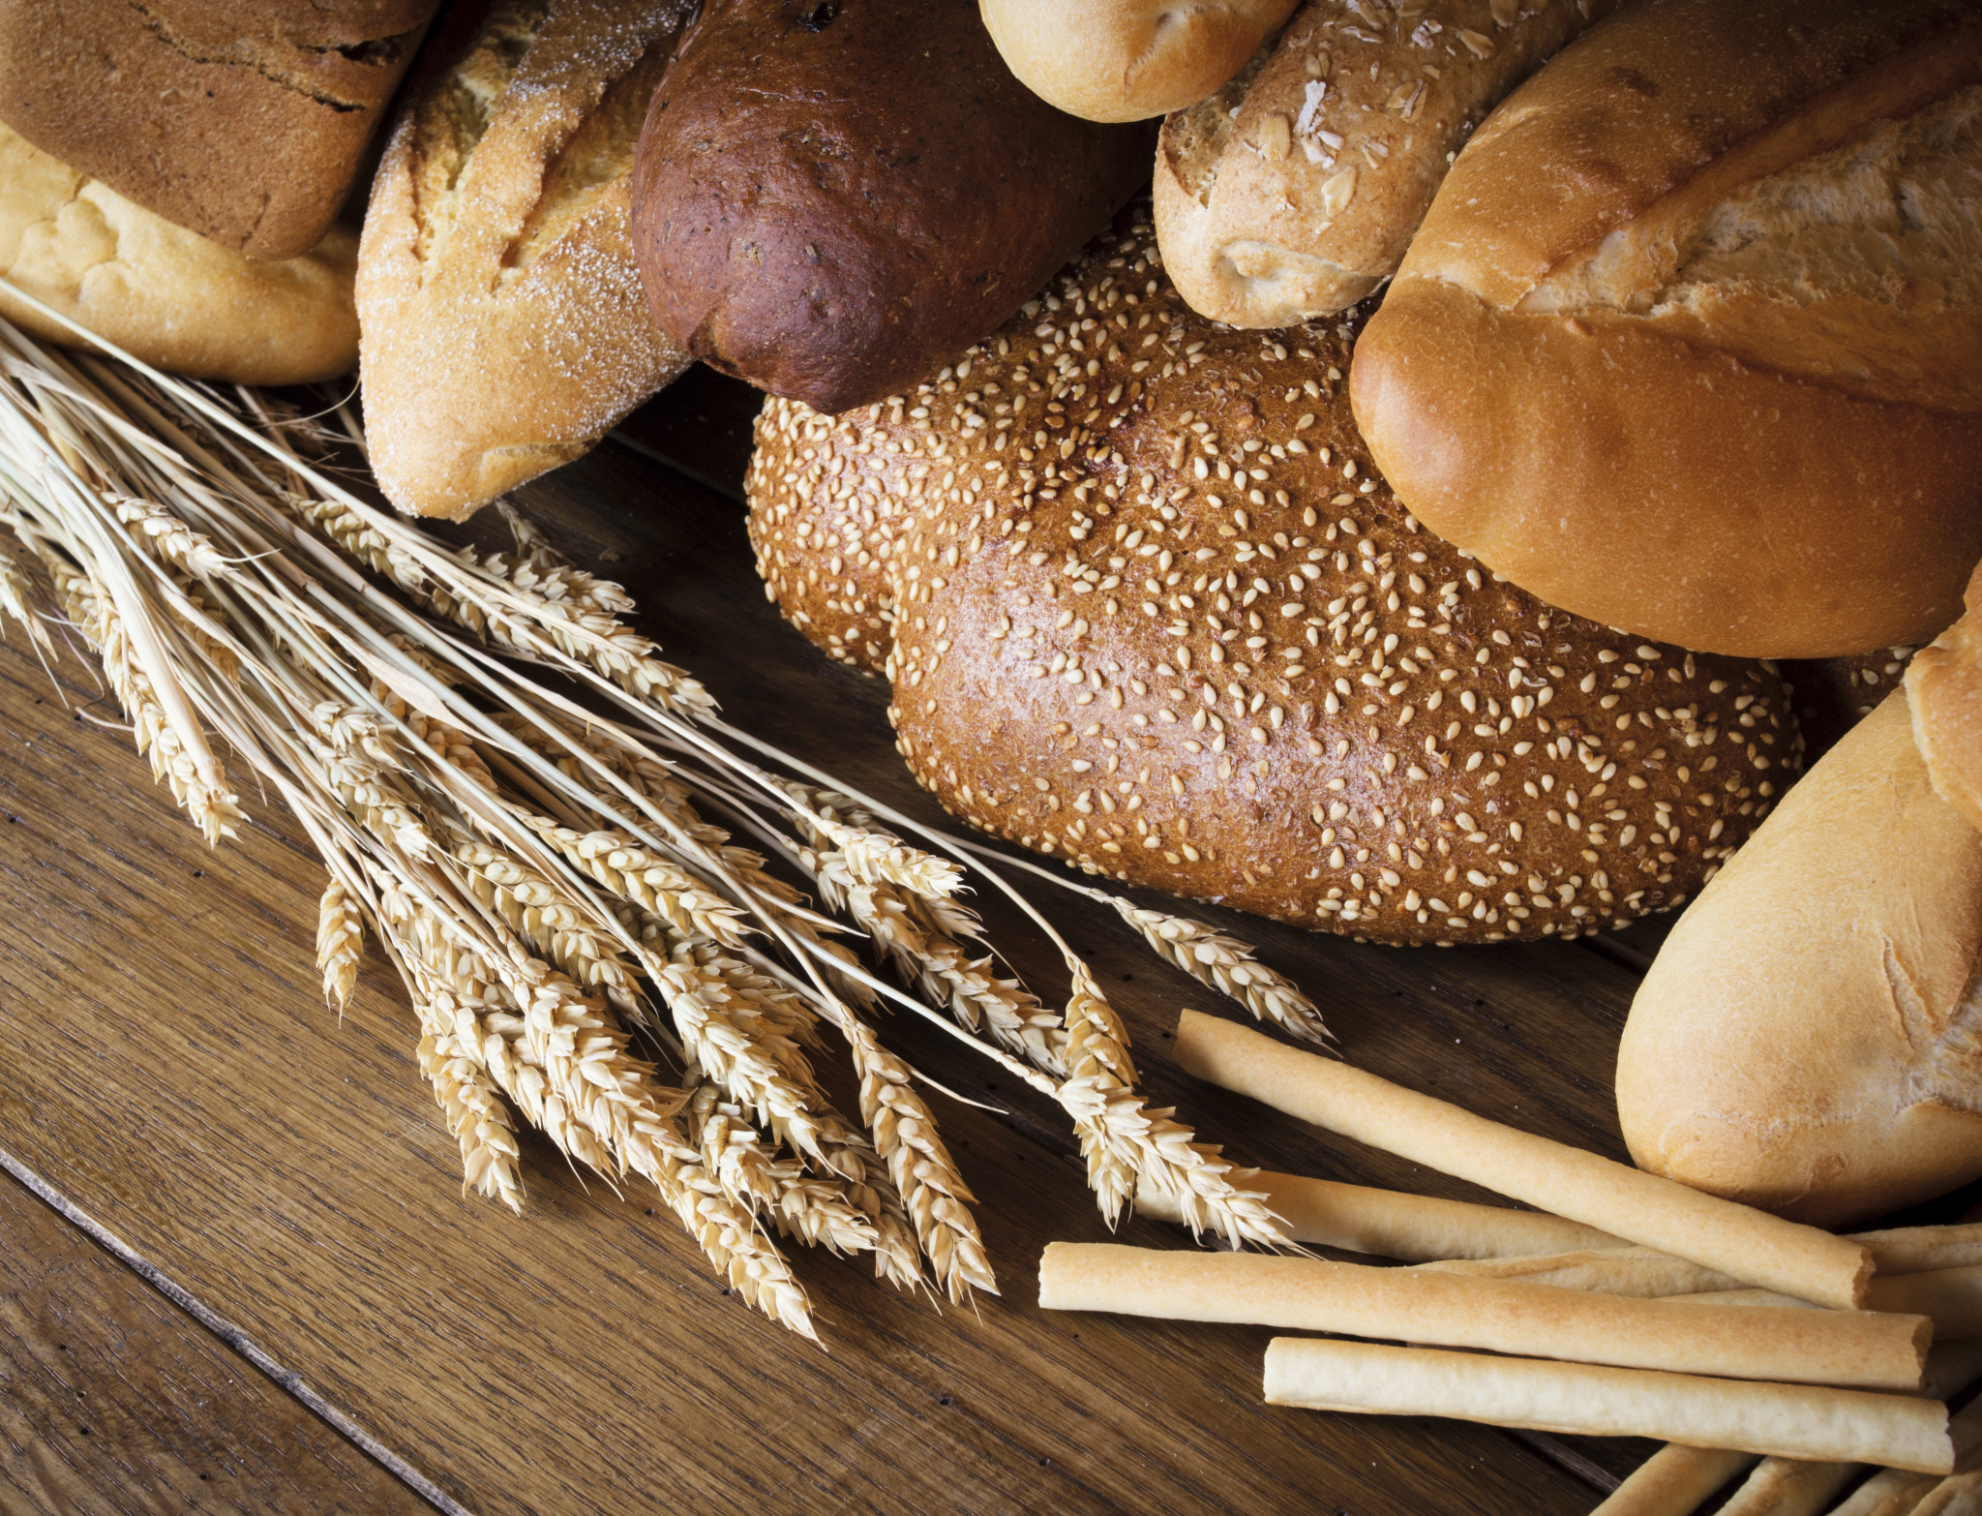 5 ways to get more whole grains in your diet